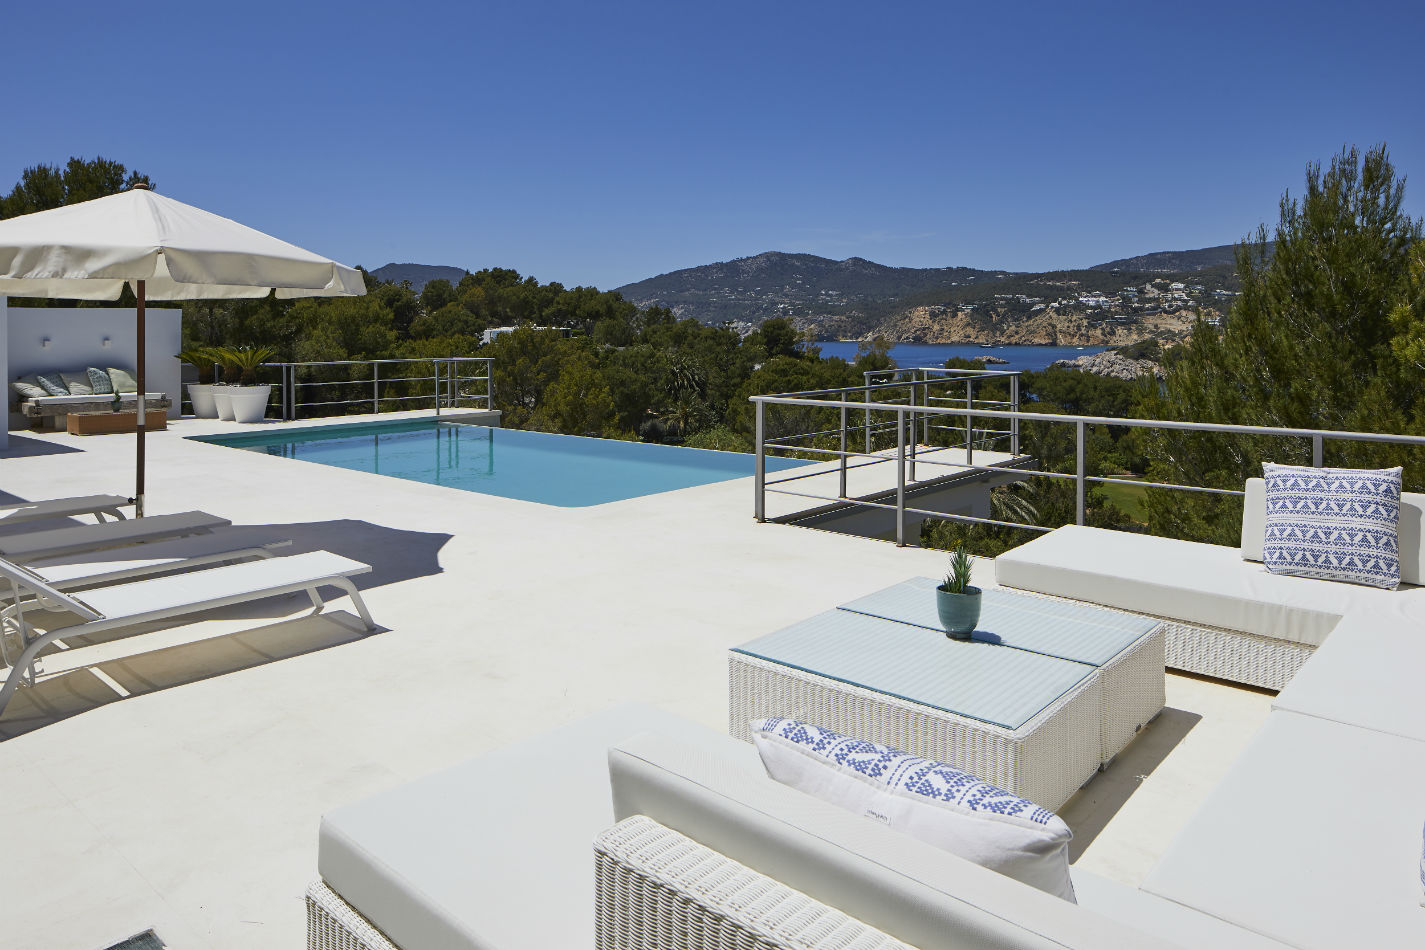 luxury villa rental, Spain, ESPIBI 3704